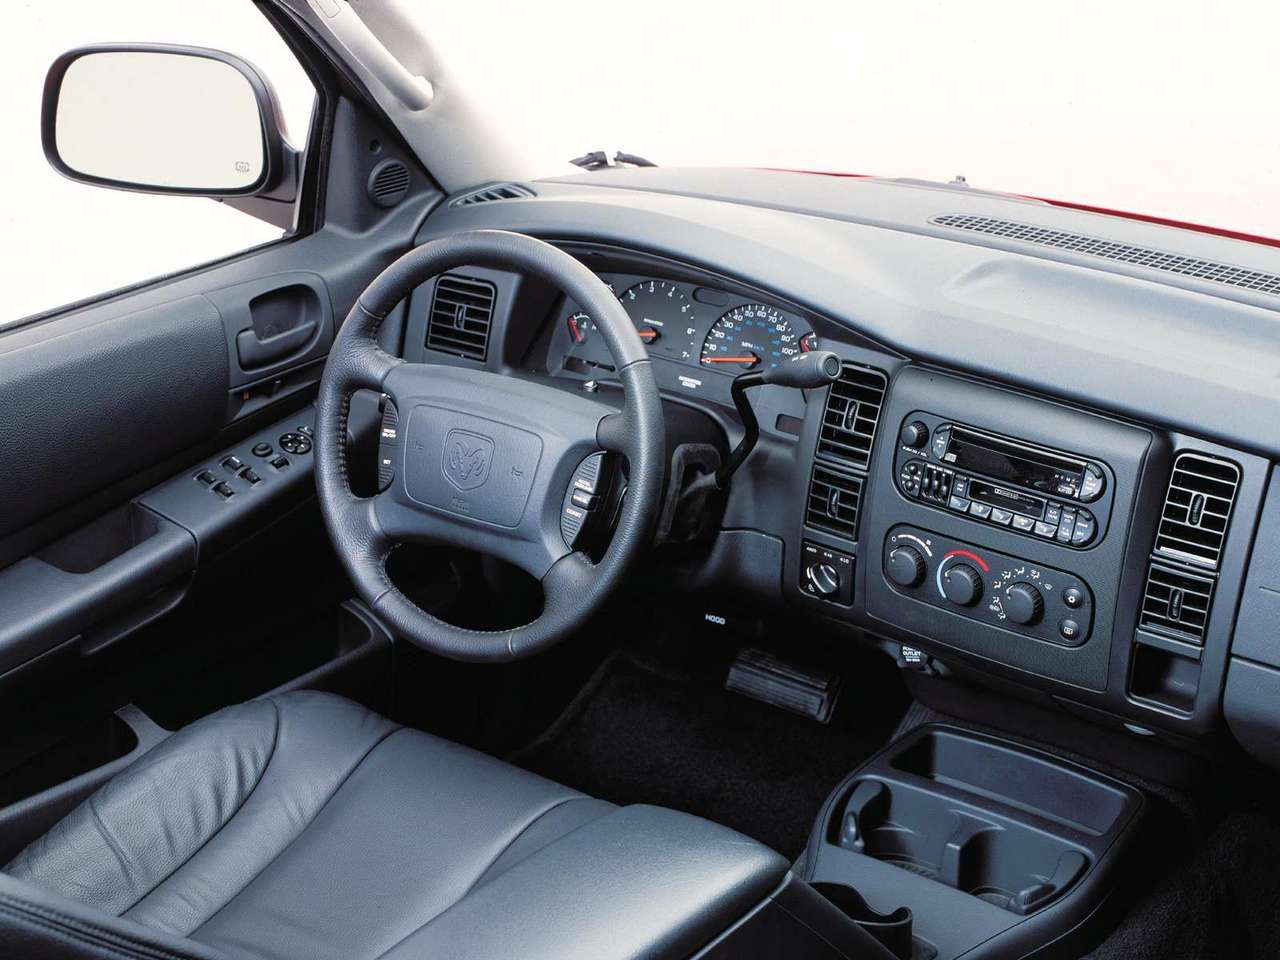 Dodge Dakota X Wallpaper on 2000 Dodge Dakota Sport Extended Cab